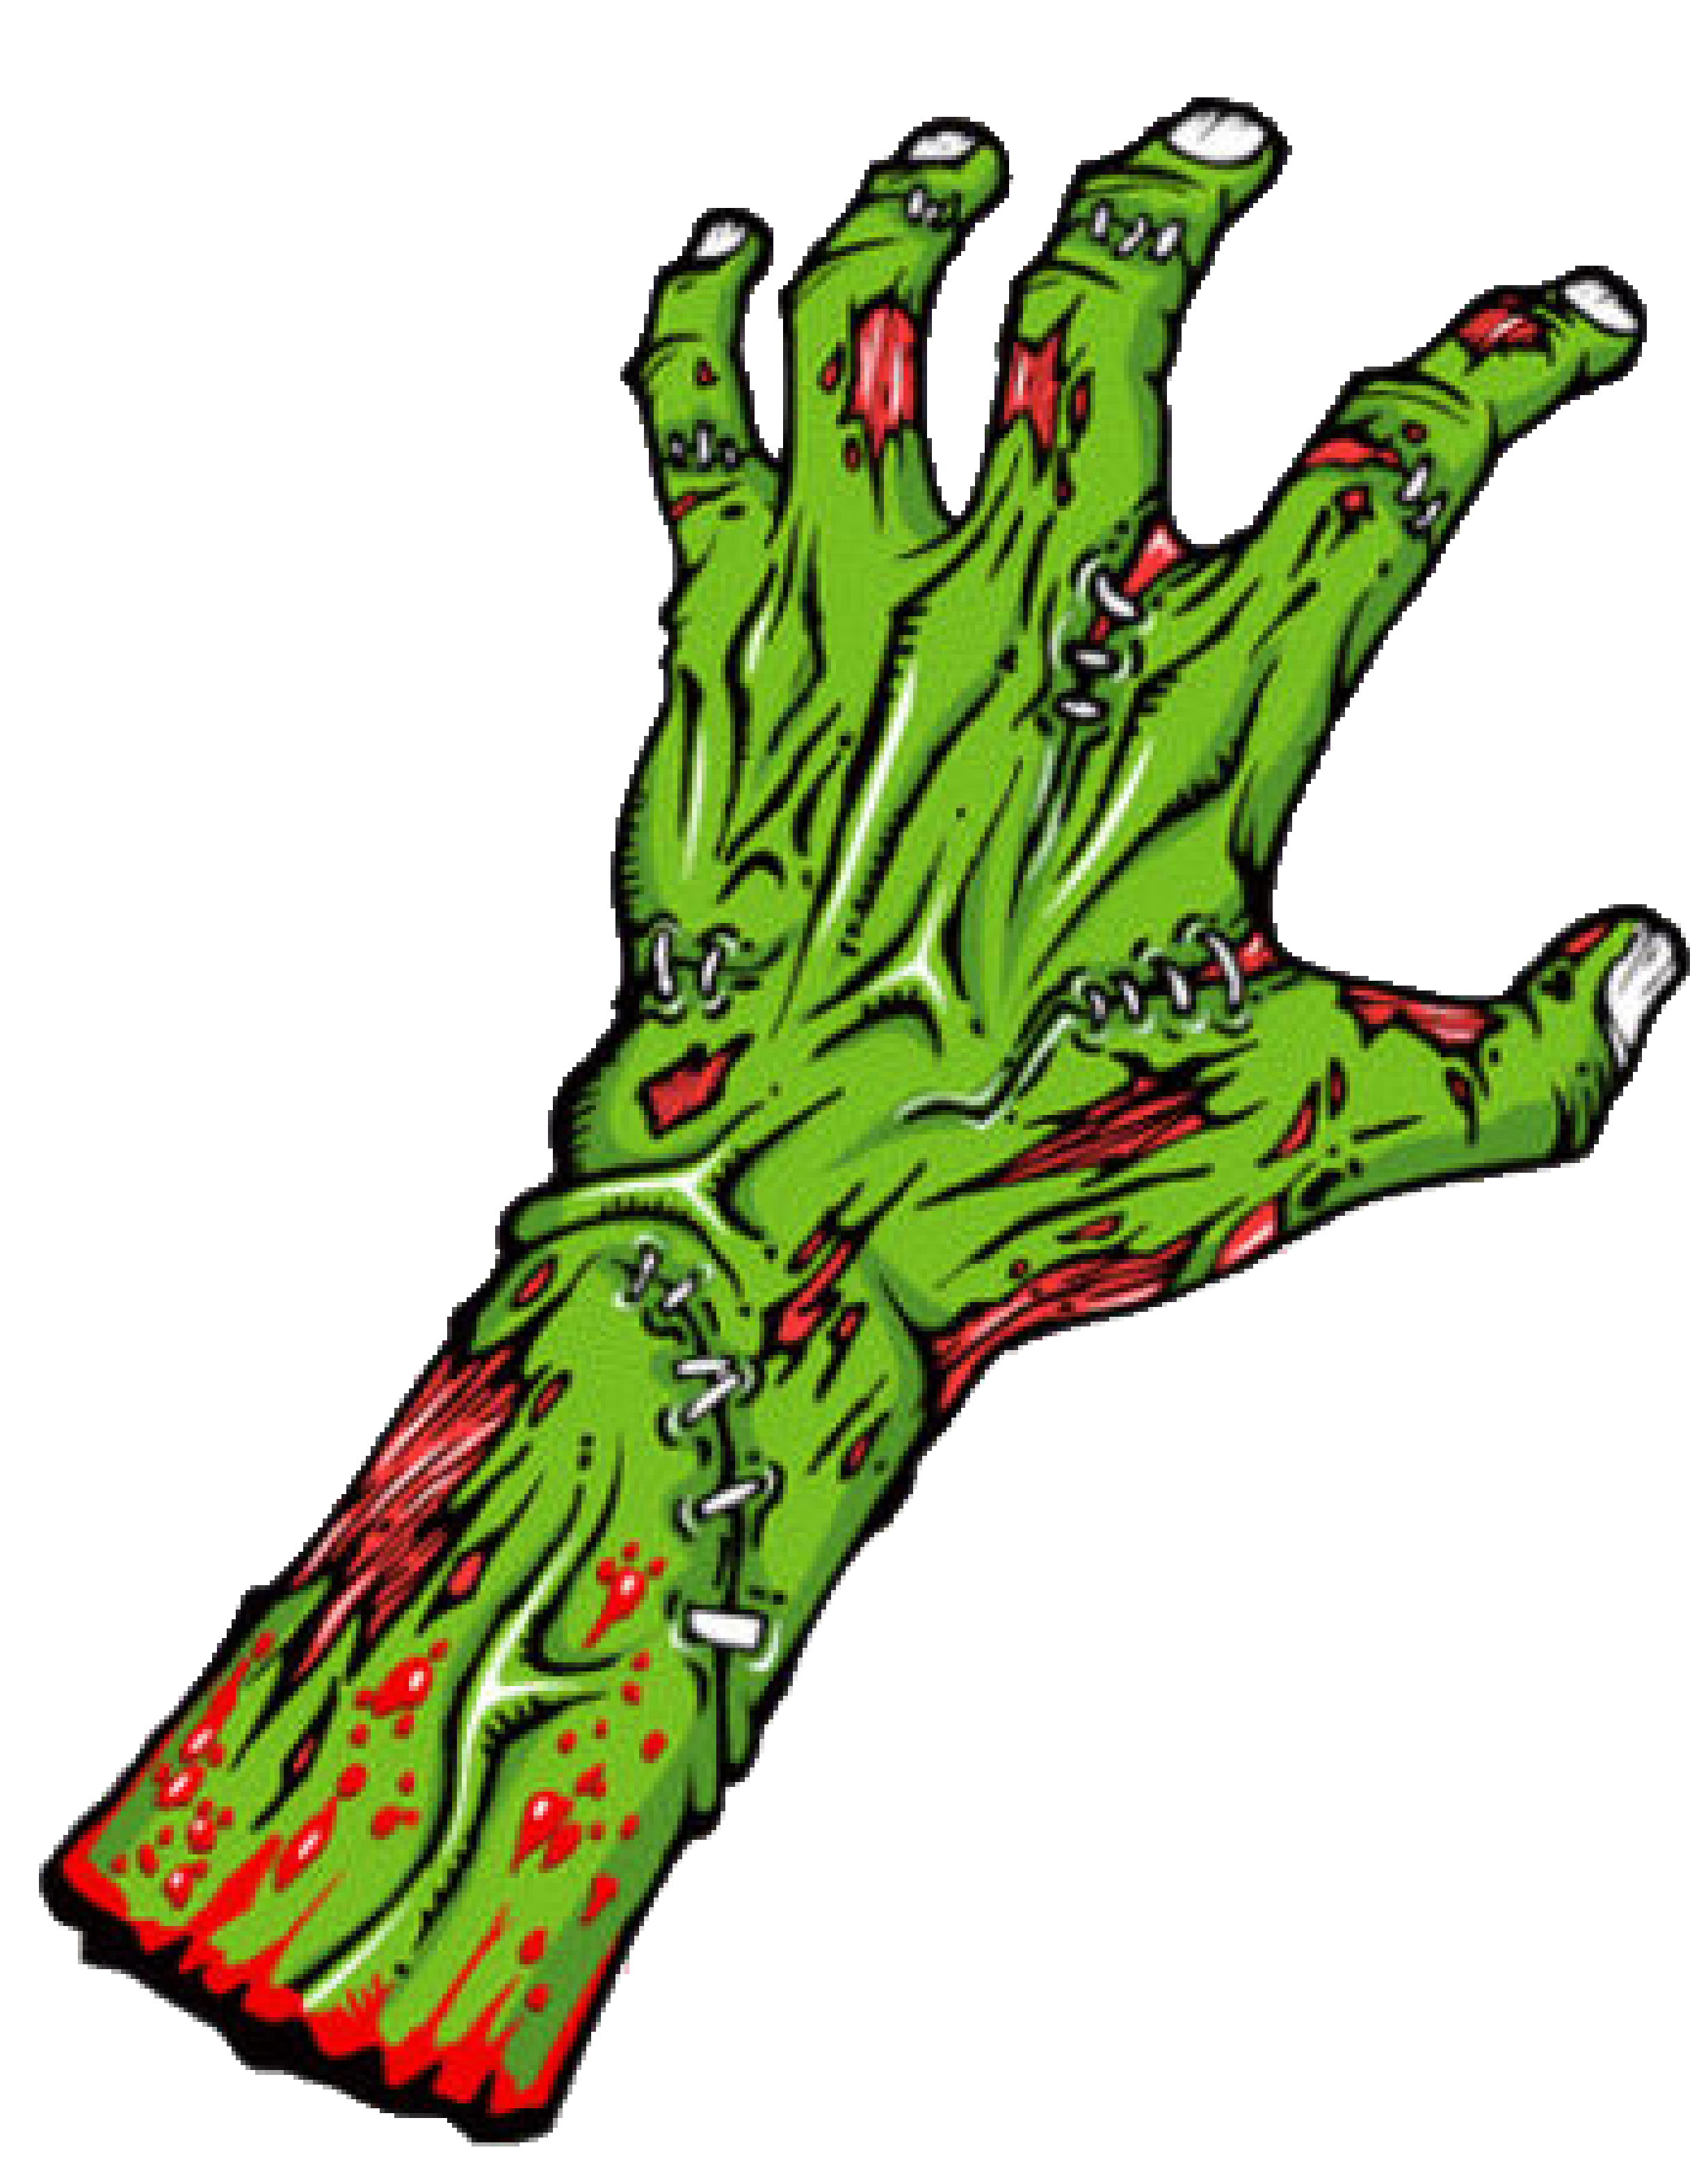 Zombie arm png. Green hand transparent stickpng